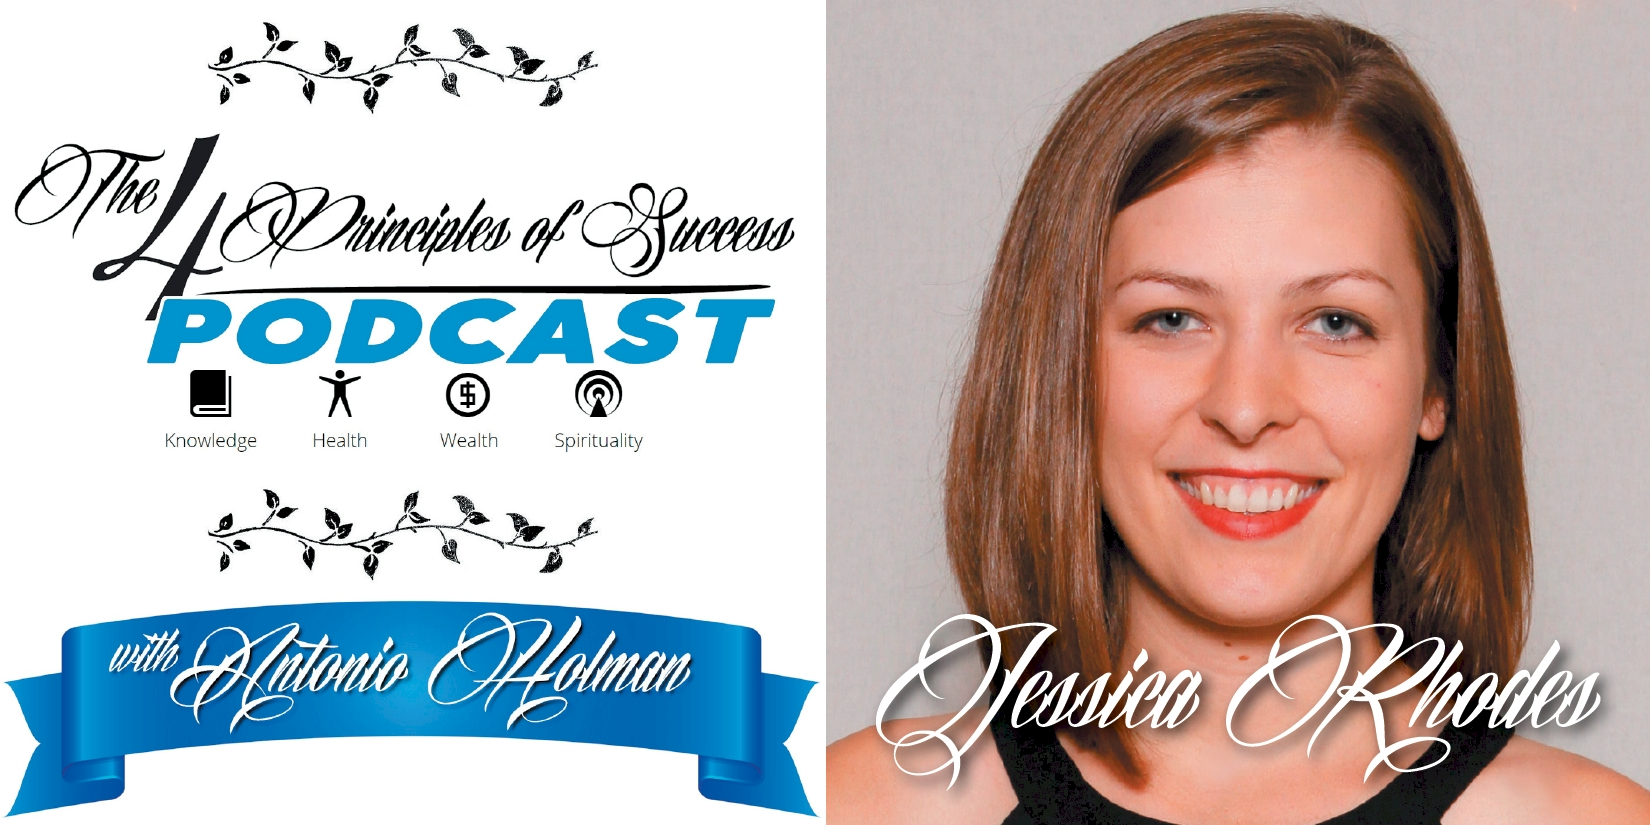 The 4 Principles of Success guest Jessica Rhodes